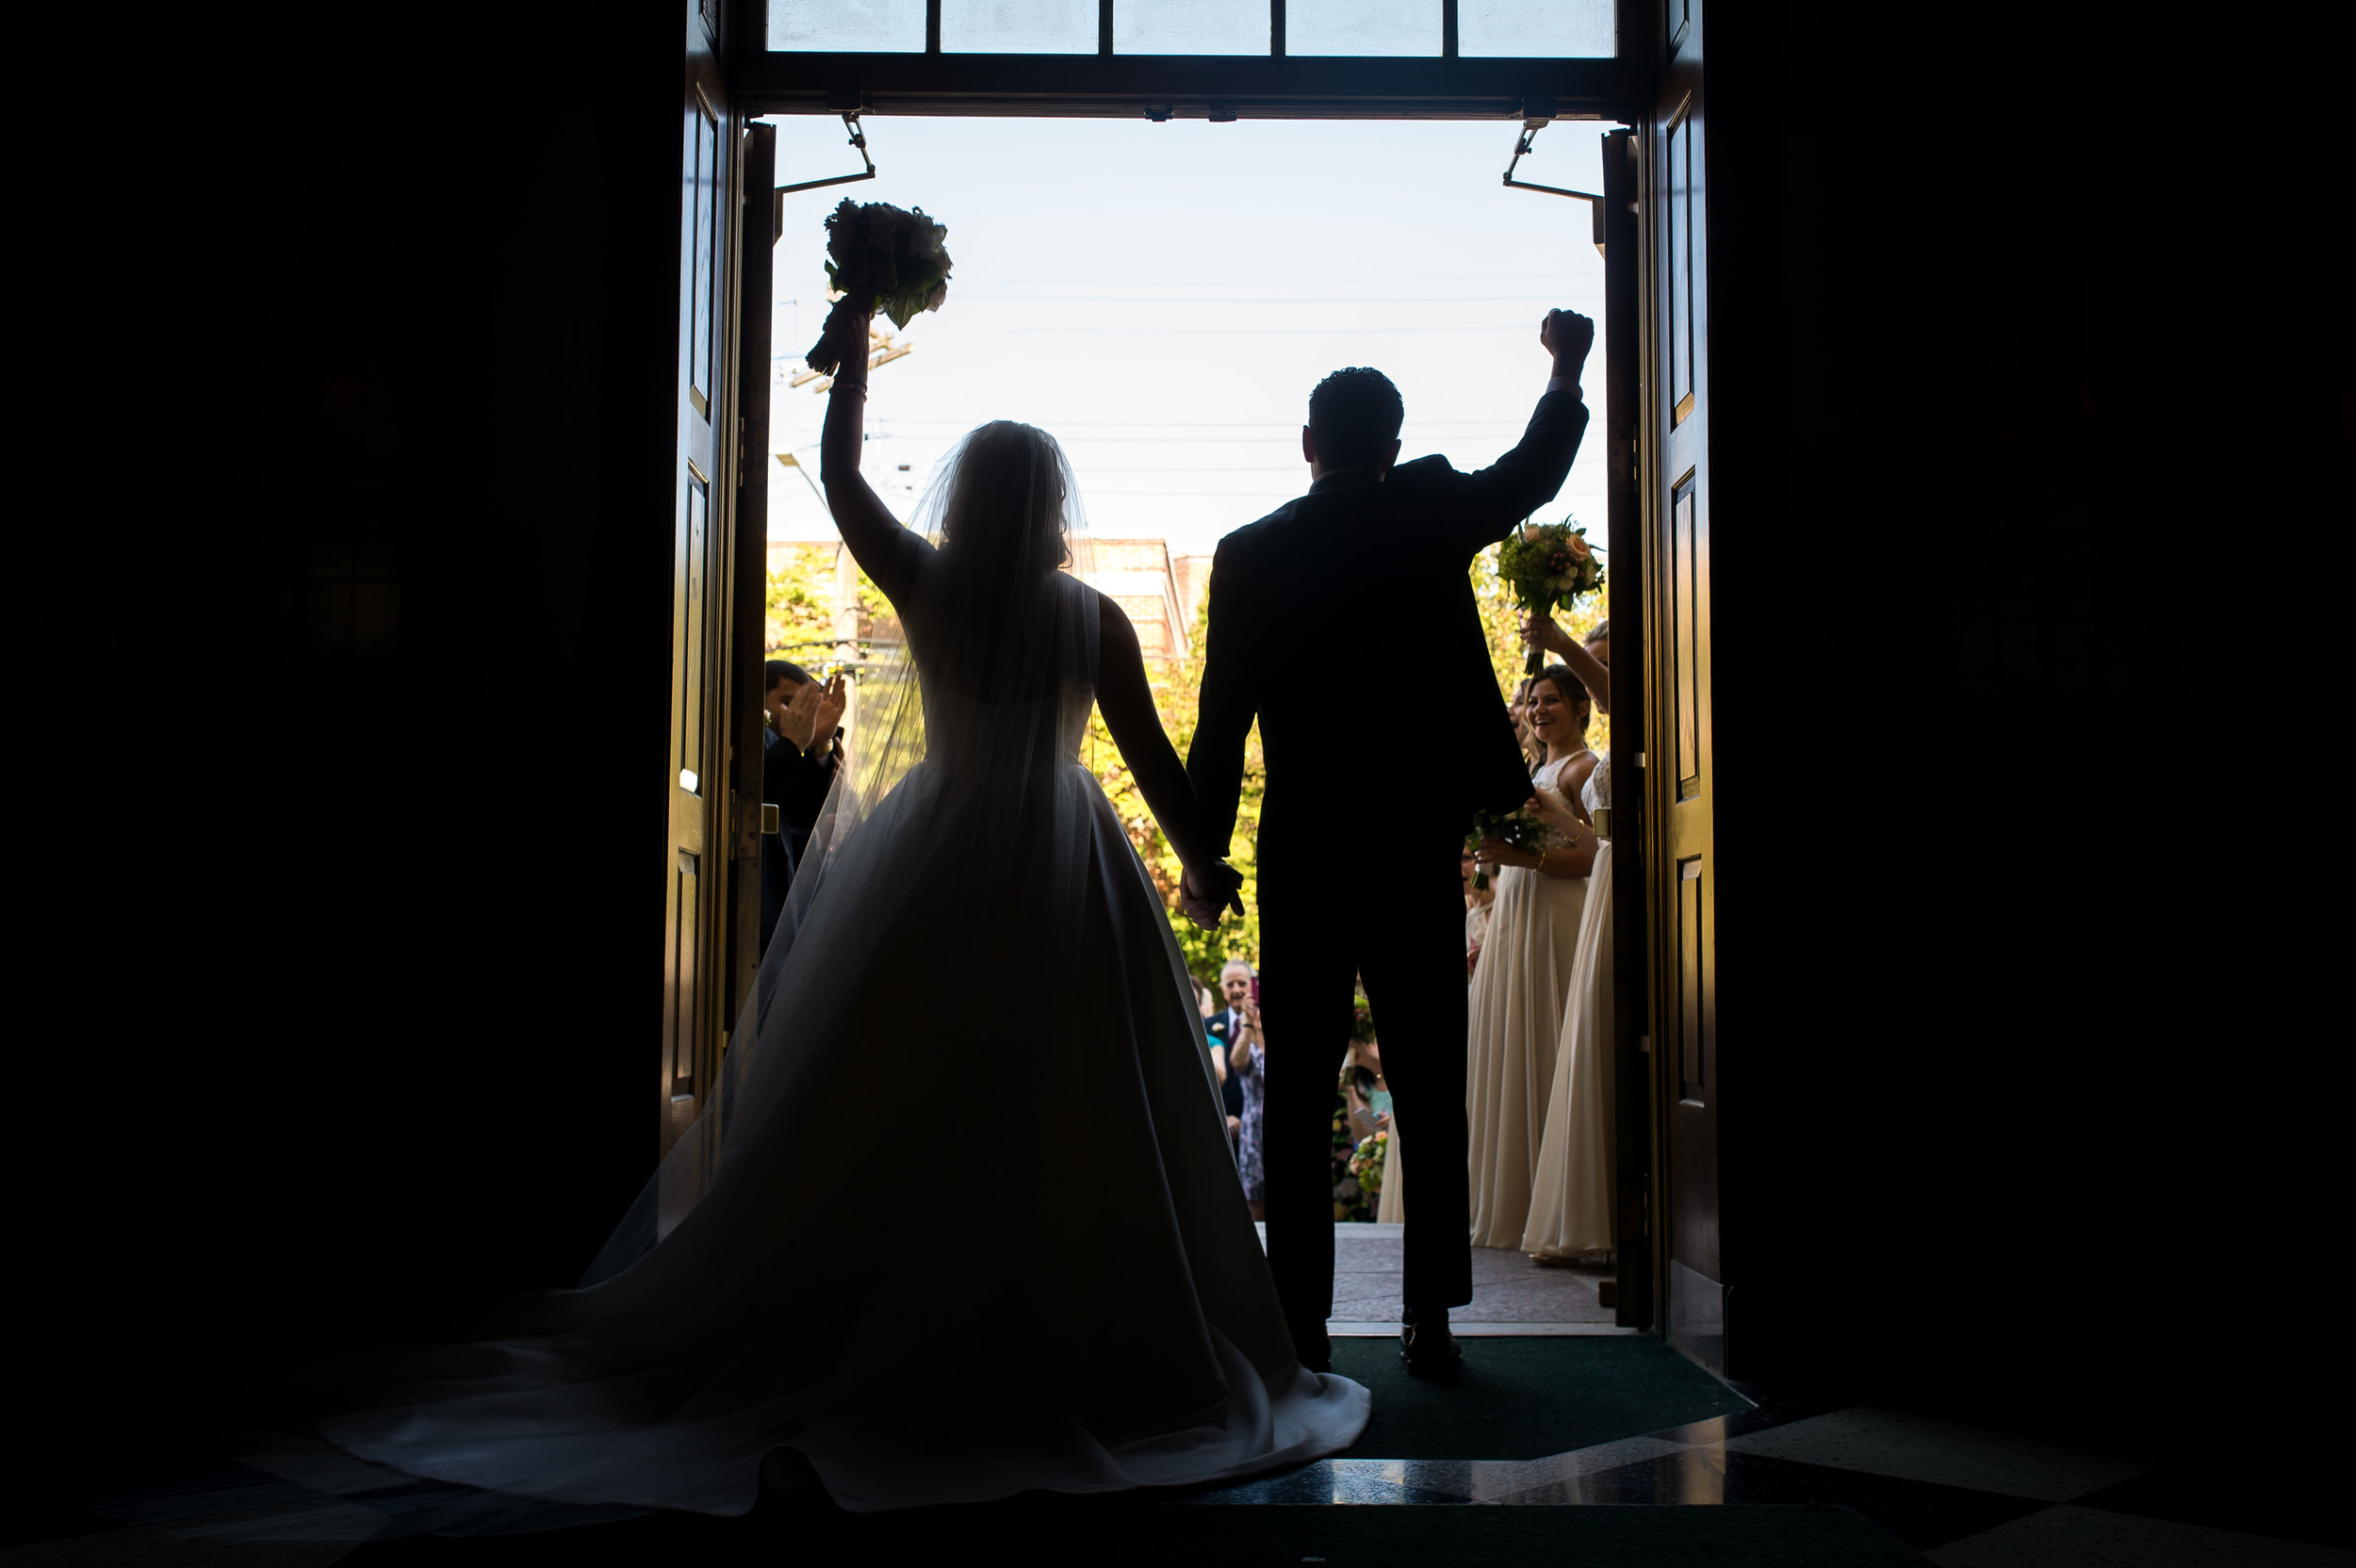 Stefy Hilmer Photography-bride and groom silhouette when exiting church.jpg